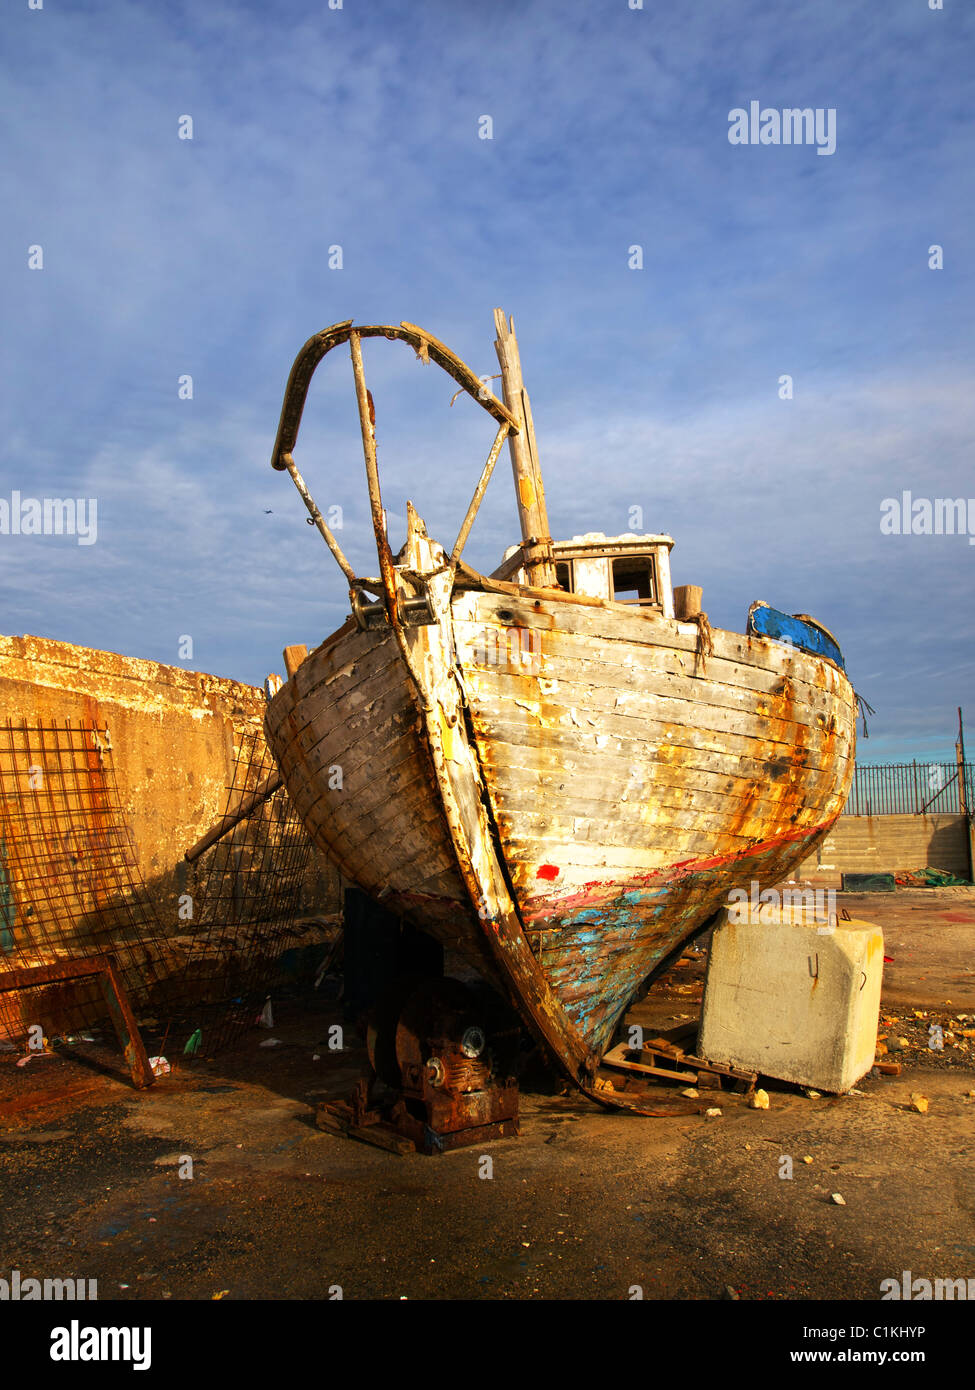 Israel, Tel Aviv-Jaffa, Old dilapidated boat at dry dock at the Jaffa port - Stock Image